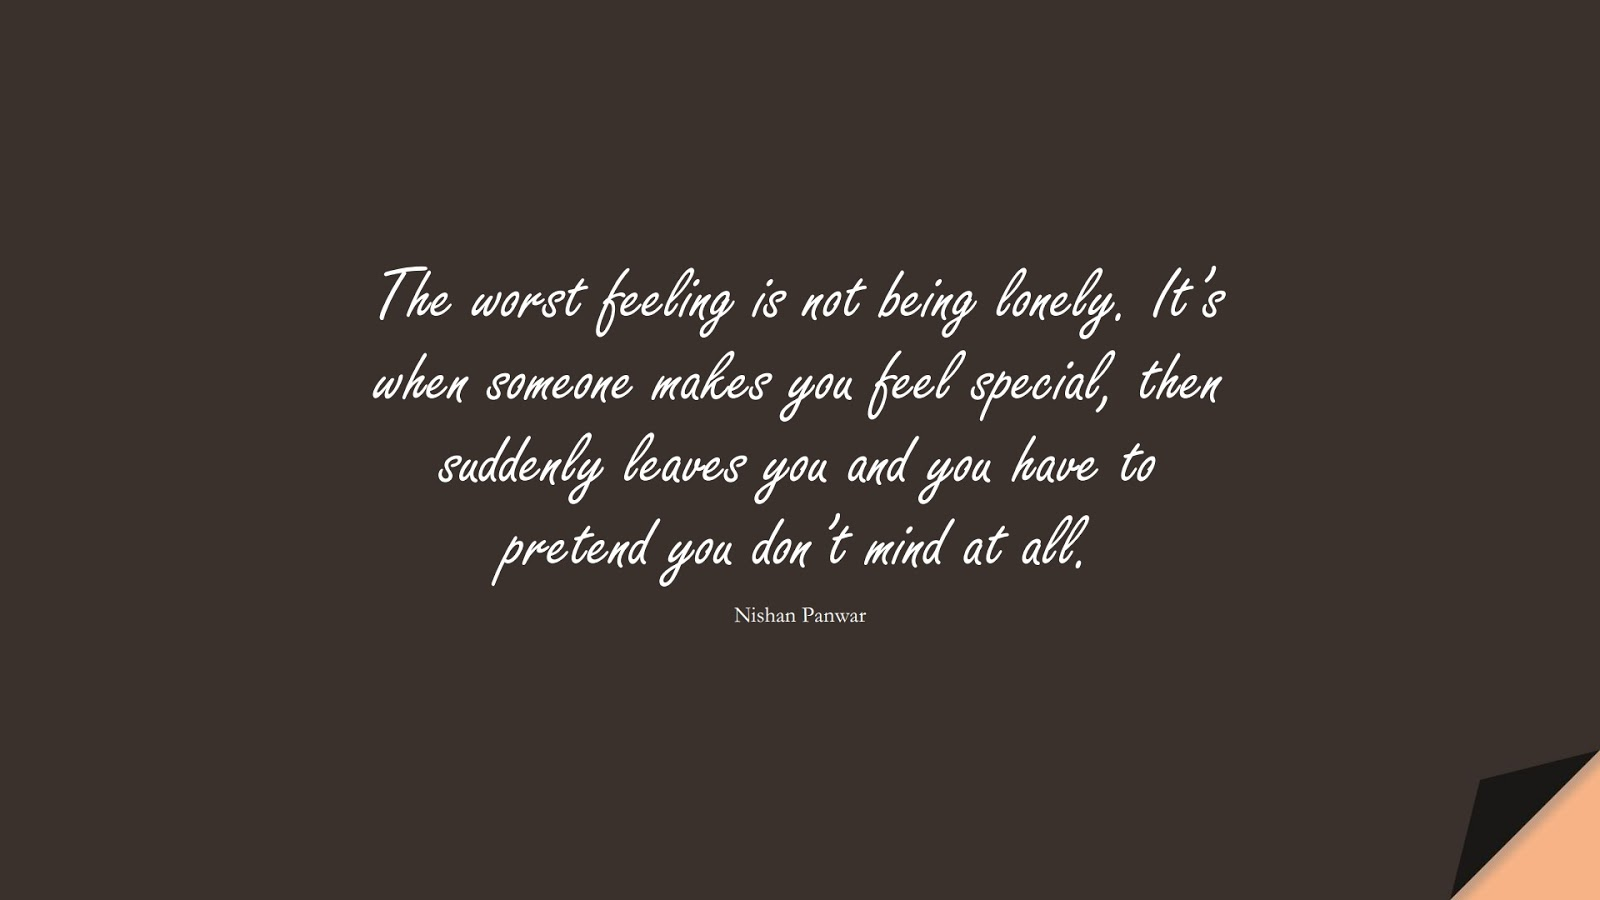 The worst feeling is not being lonely. It's when someone makes you feel special, then suddenly leaves you and you have to pretend you don't mind at all. (Nishan Panwar);  #SadLoveQuotes